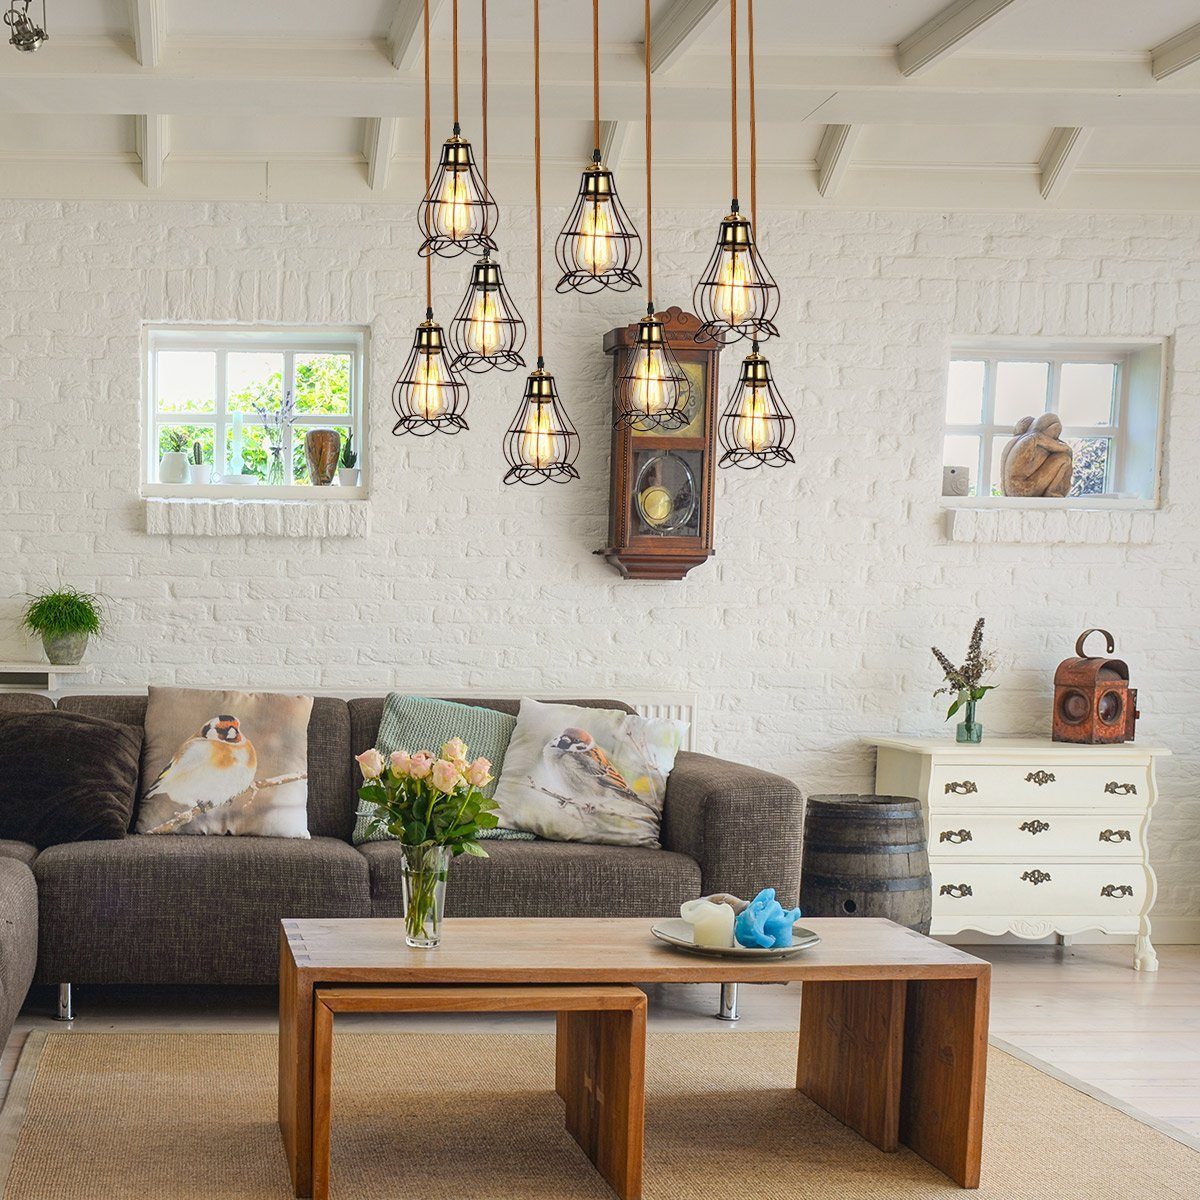 Industrial Gold Metal Pendant Light Chandelier For Living Room